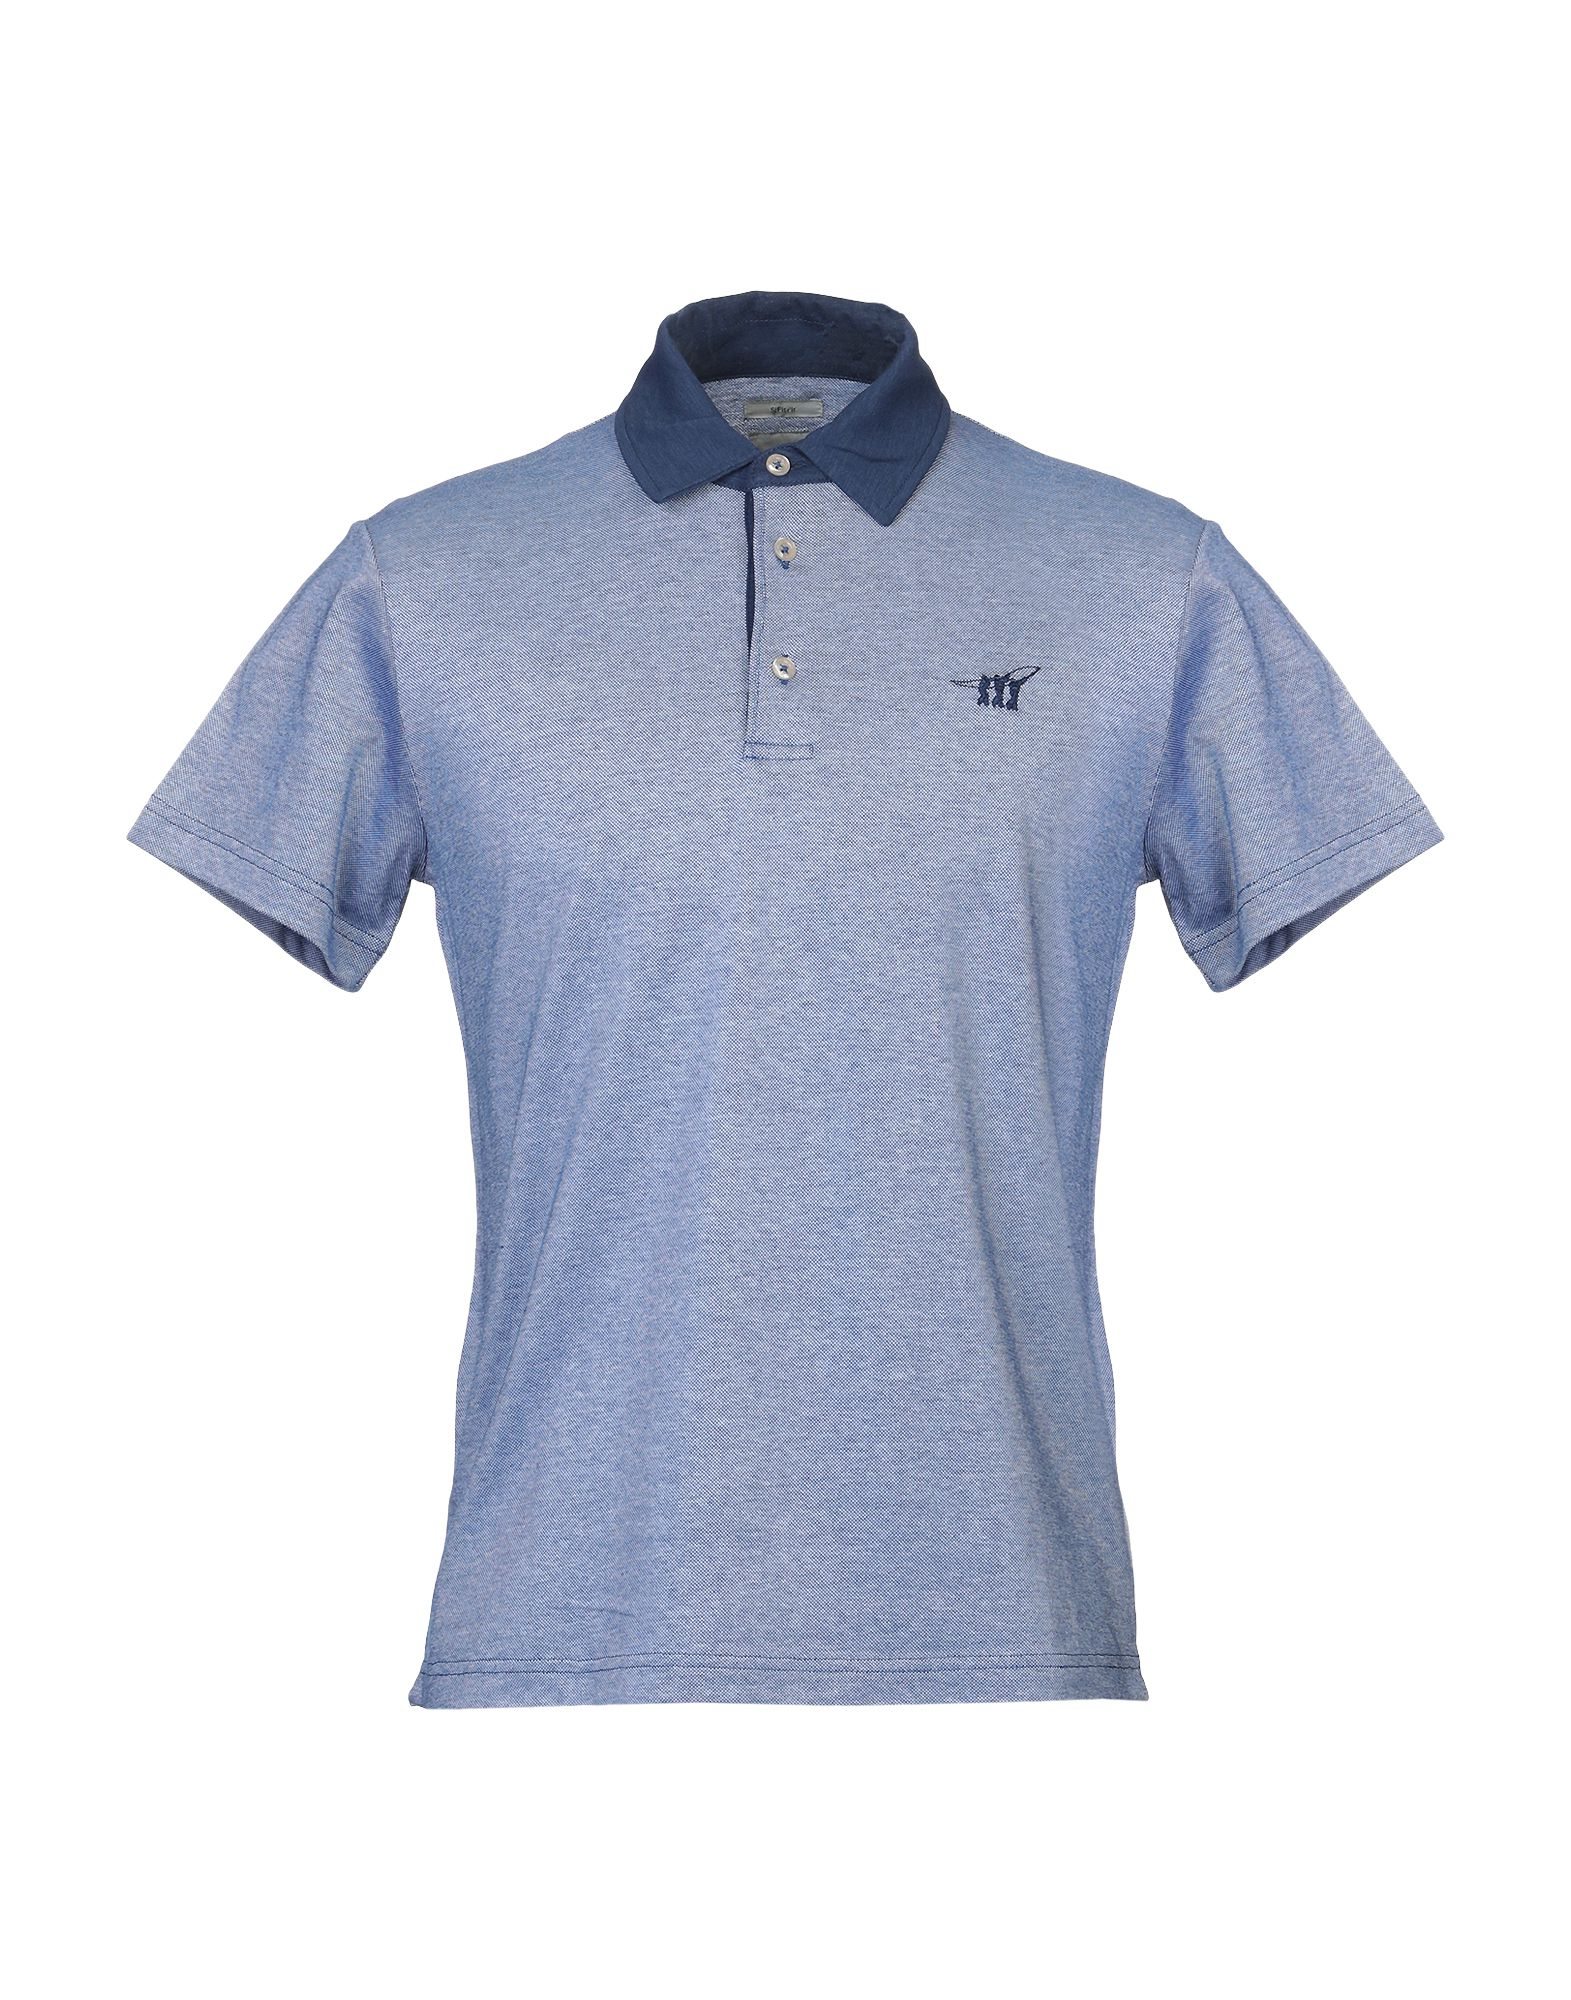 Henry Cotton s Men - Henry Cotton s T-Shirts And Tops - YOOX United States e3f1da5782